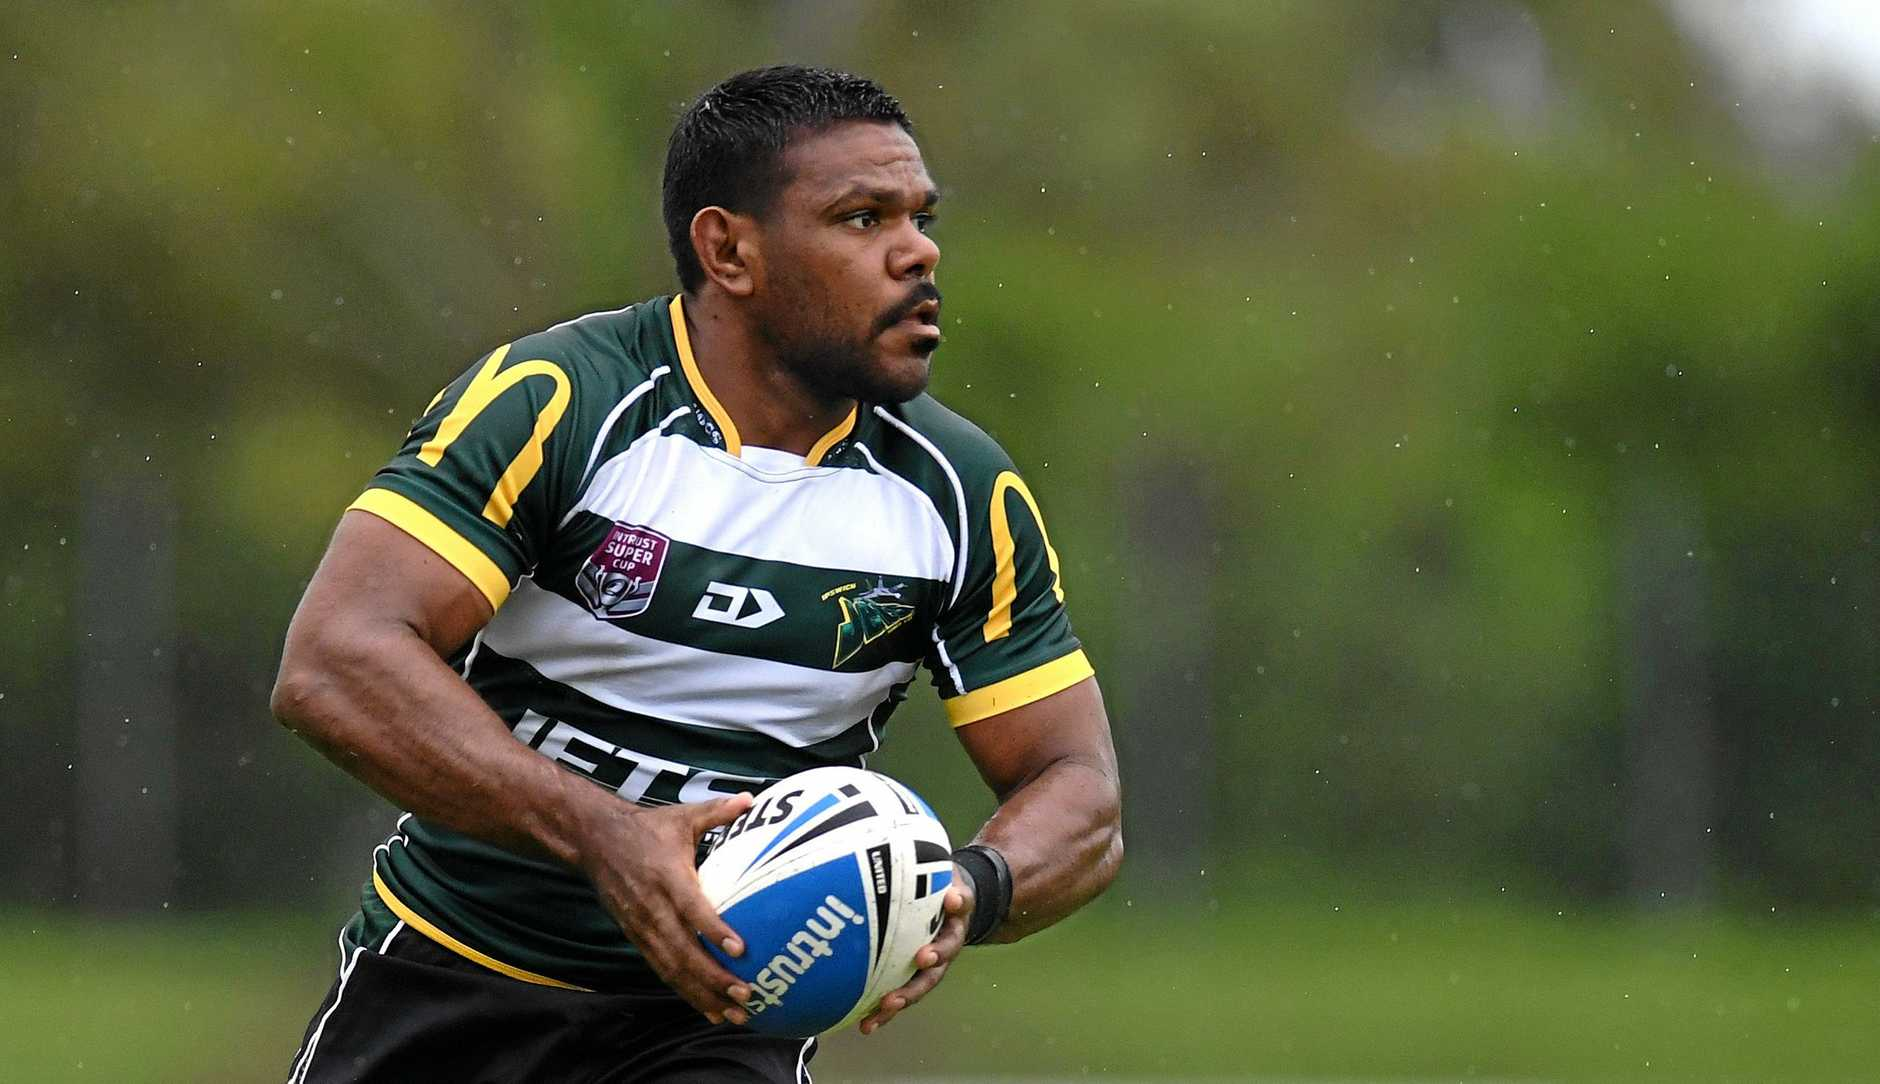 LIVEWIRE: Kierran Moseley scooted 15 metres and diver over for a four-pointer against Easts.